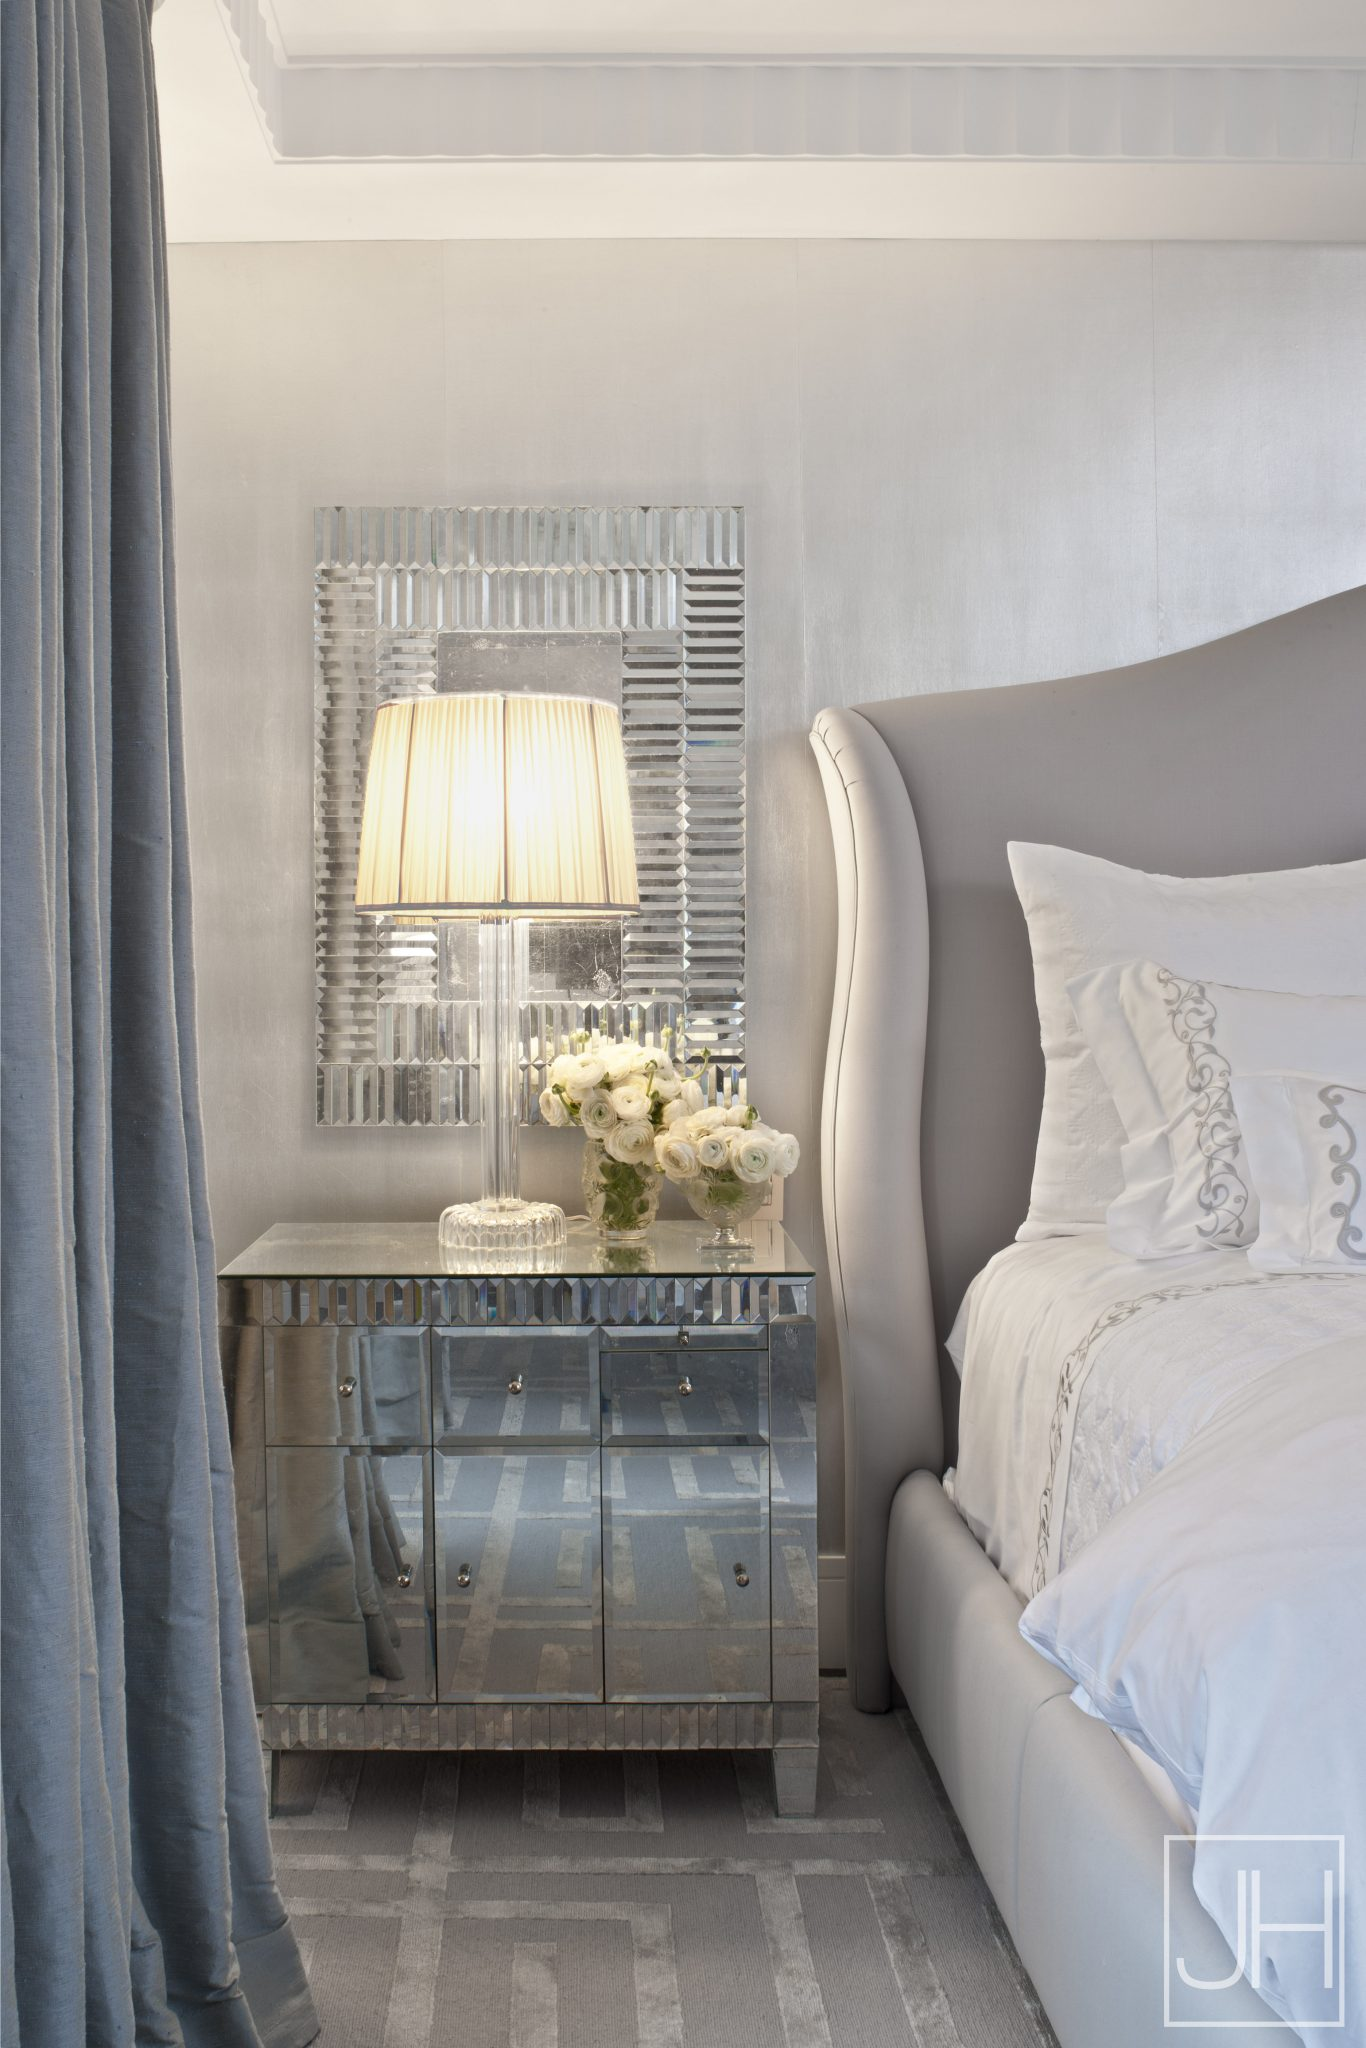 5th-Ave-Master-Bedroom-2-1